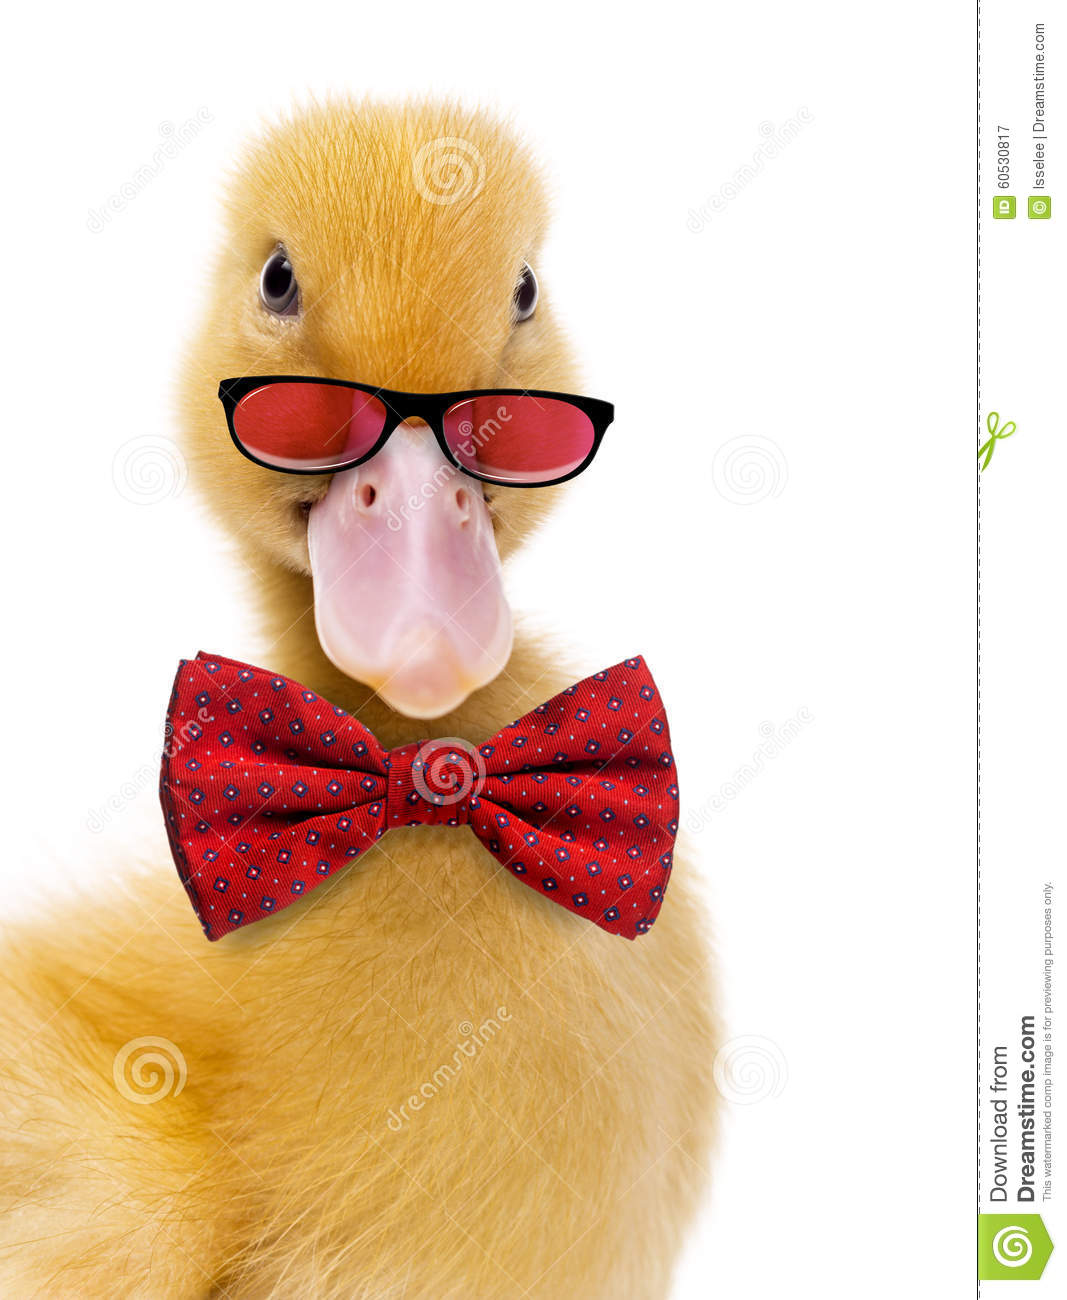 Close Up Of A Duckling Wearing Glasses And A Bow Tie Stock